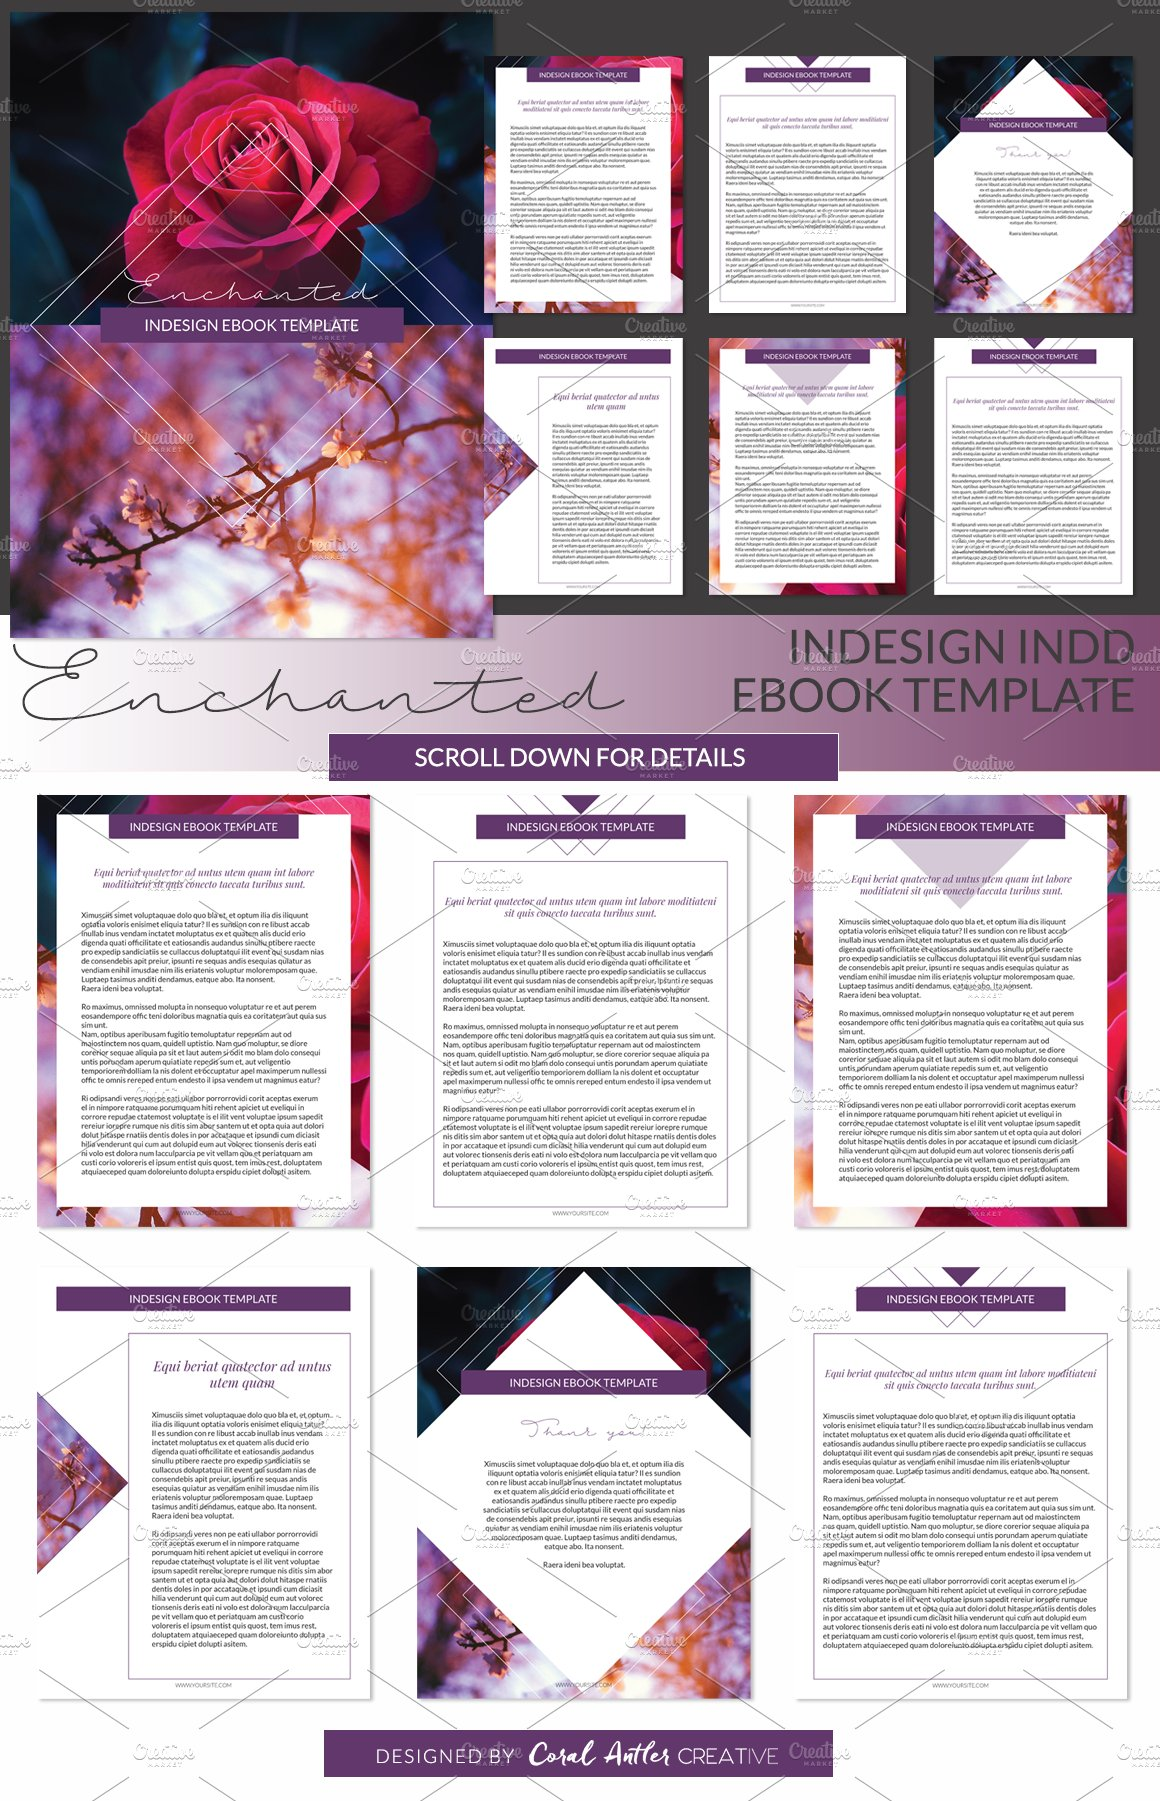 enchanted indesign ebook template presentation templates creative market. Black Bedroom Furniture Sets. Home Design Ideas